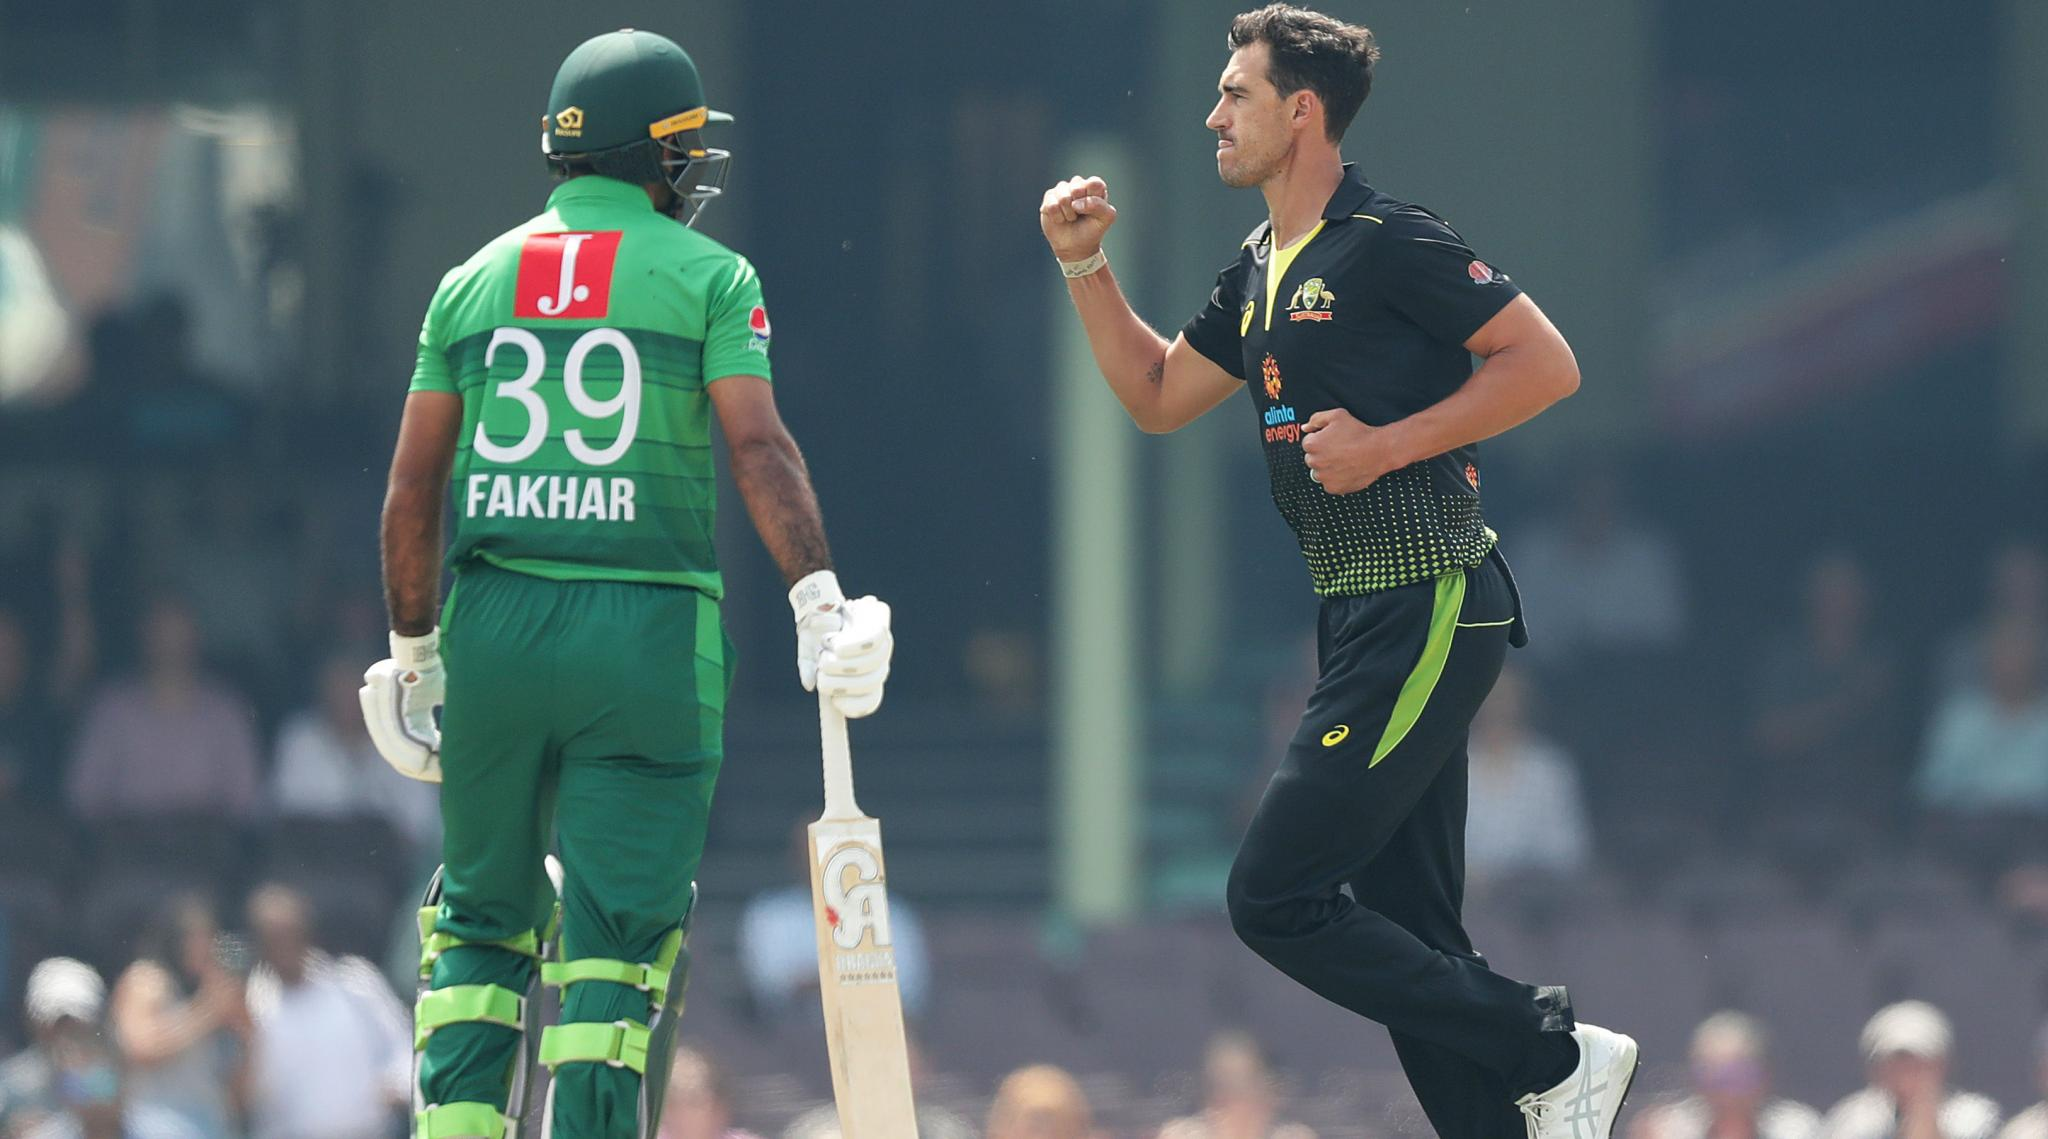 Australia vs Pakistan 1st T20I Match Result: Rain Spoils Game, Hosts Aussies Frustrated As Pak Avoid Defeat Due to Bad Weather